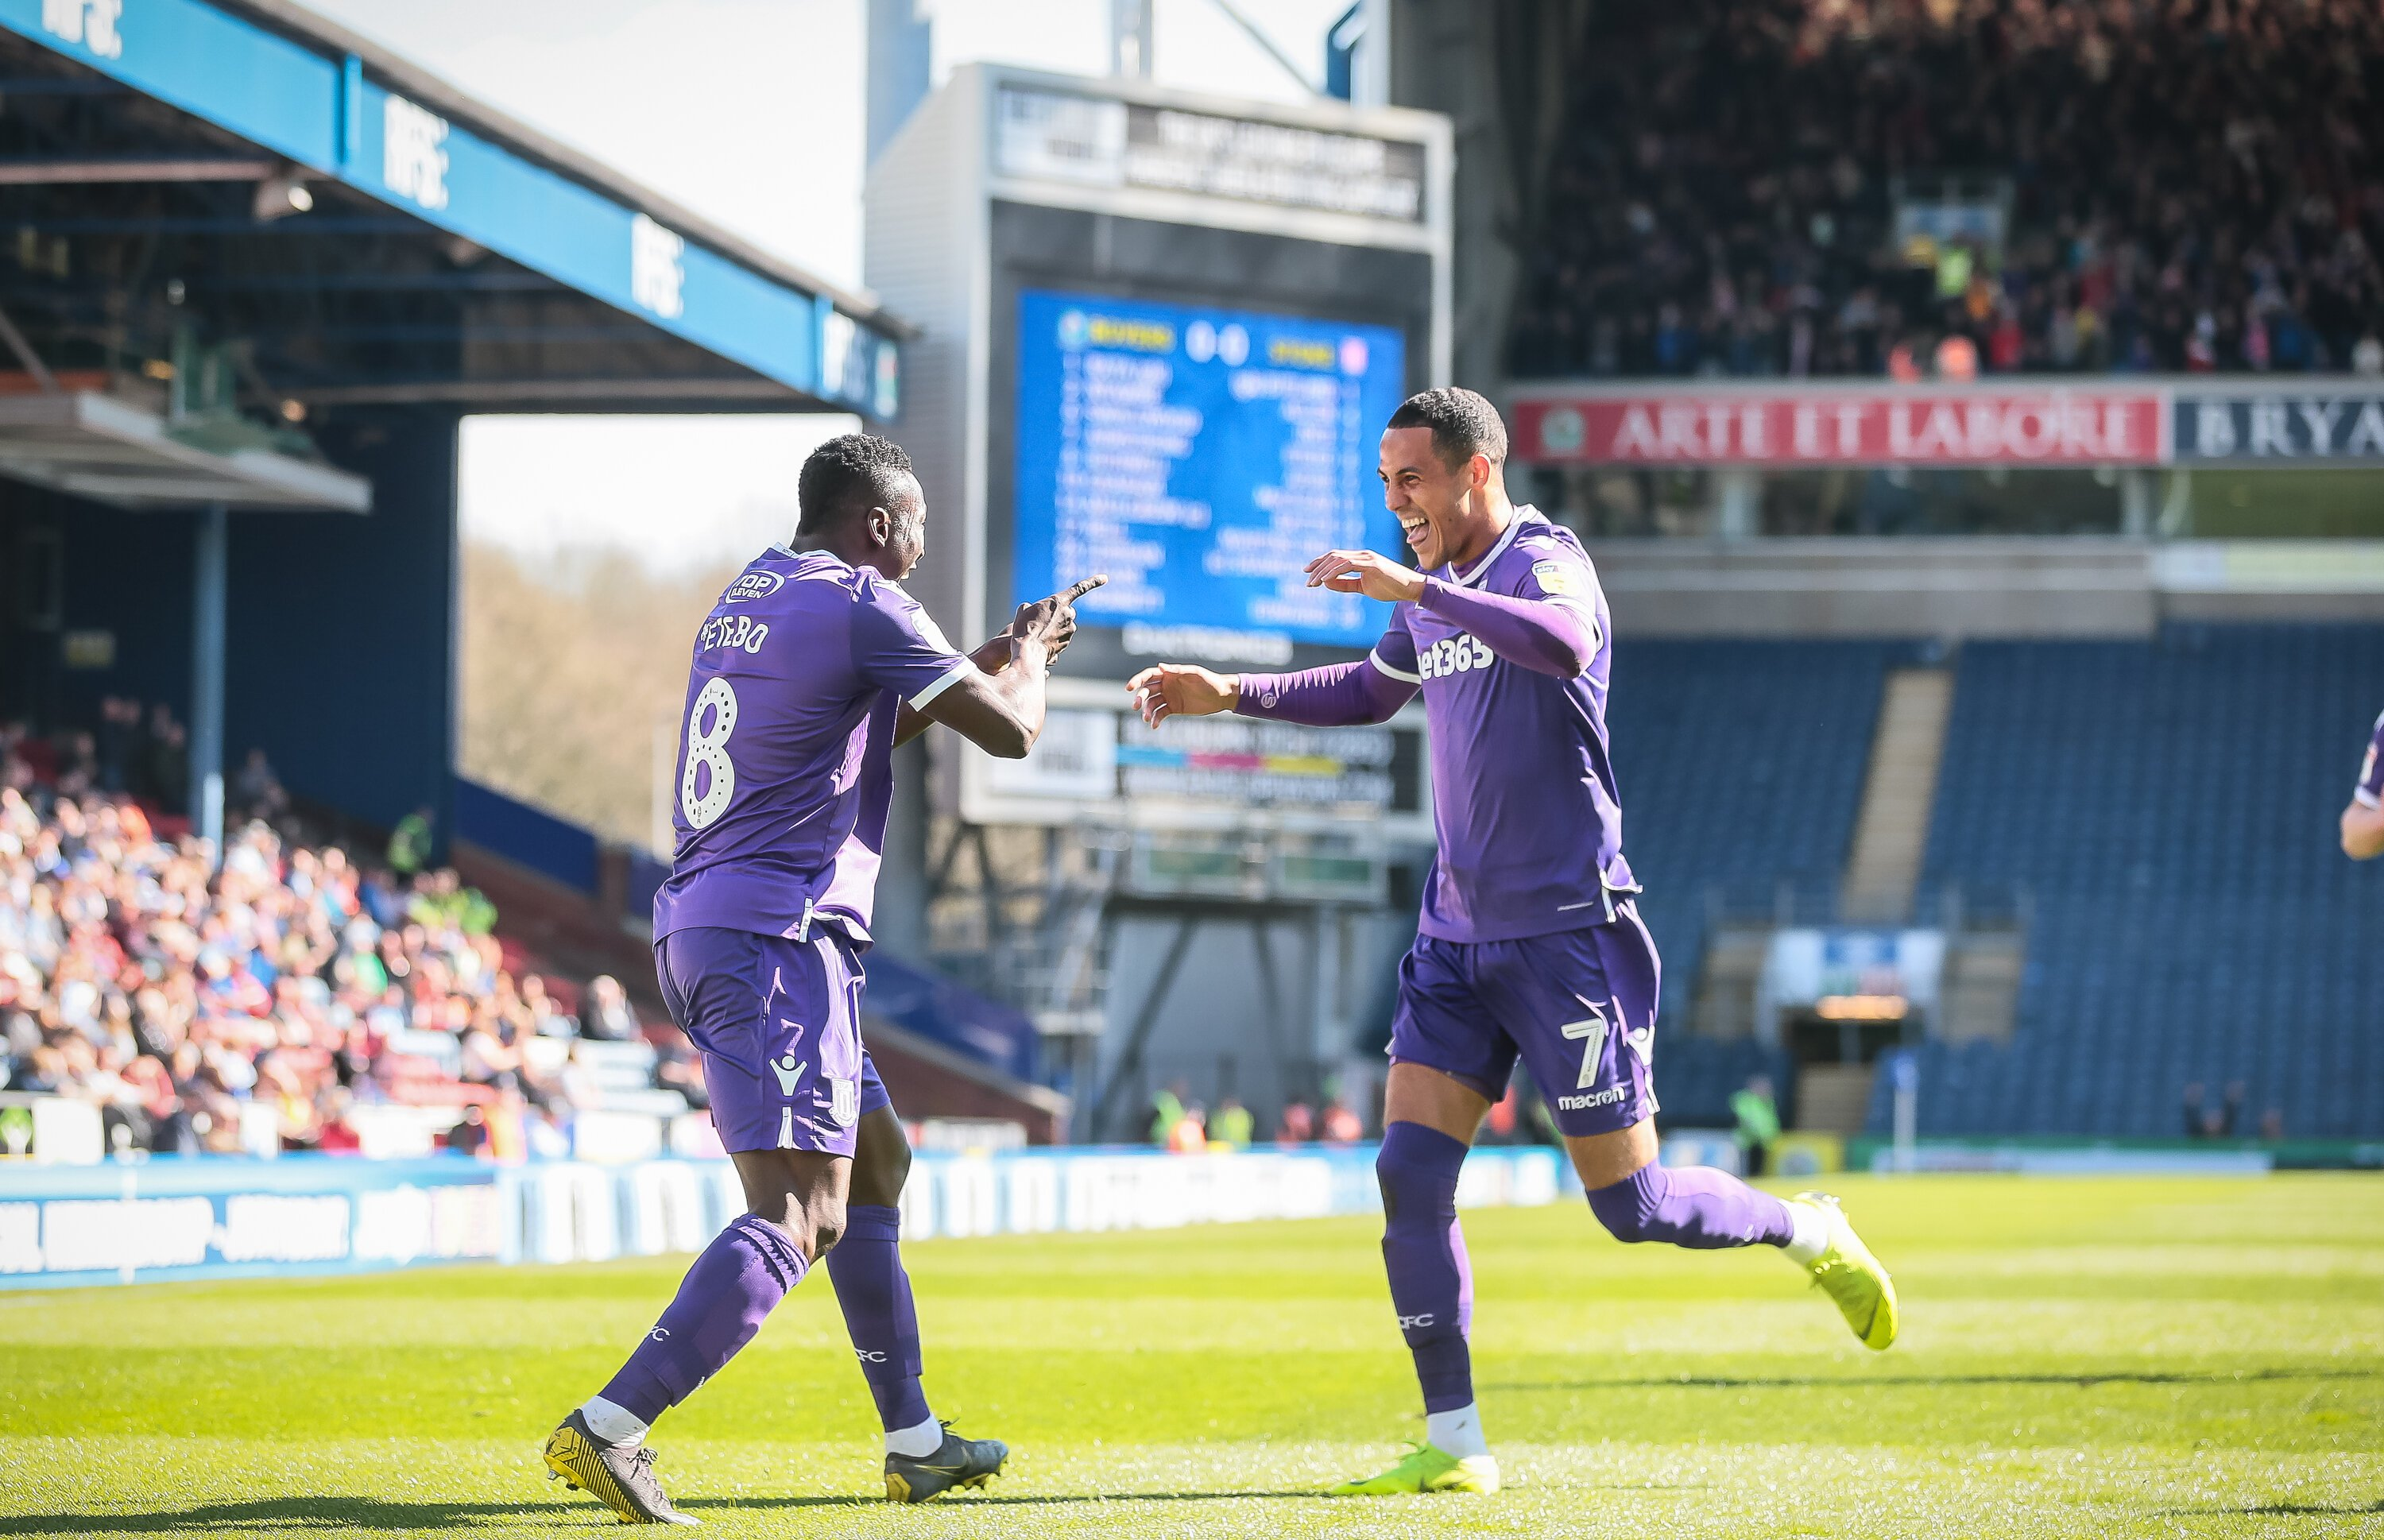 Championship: Etebo's Rocket Fires Stoke City Past Blackburn;  Mikel Loses Again With Boro